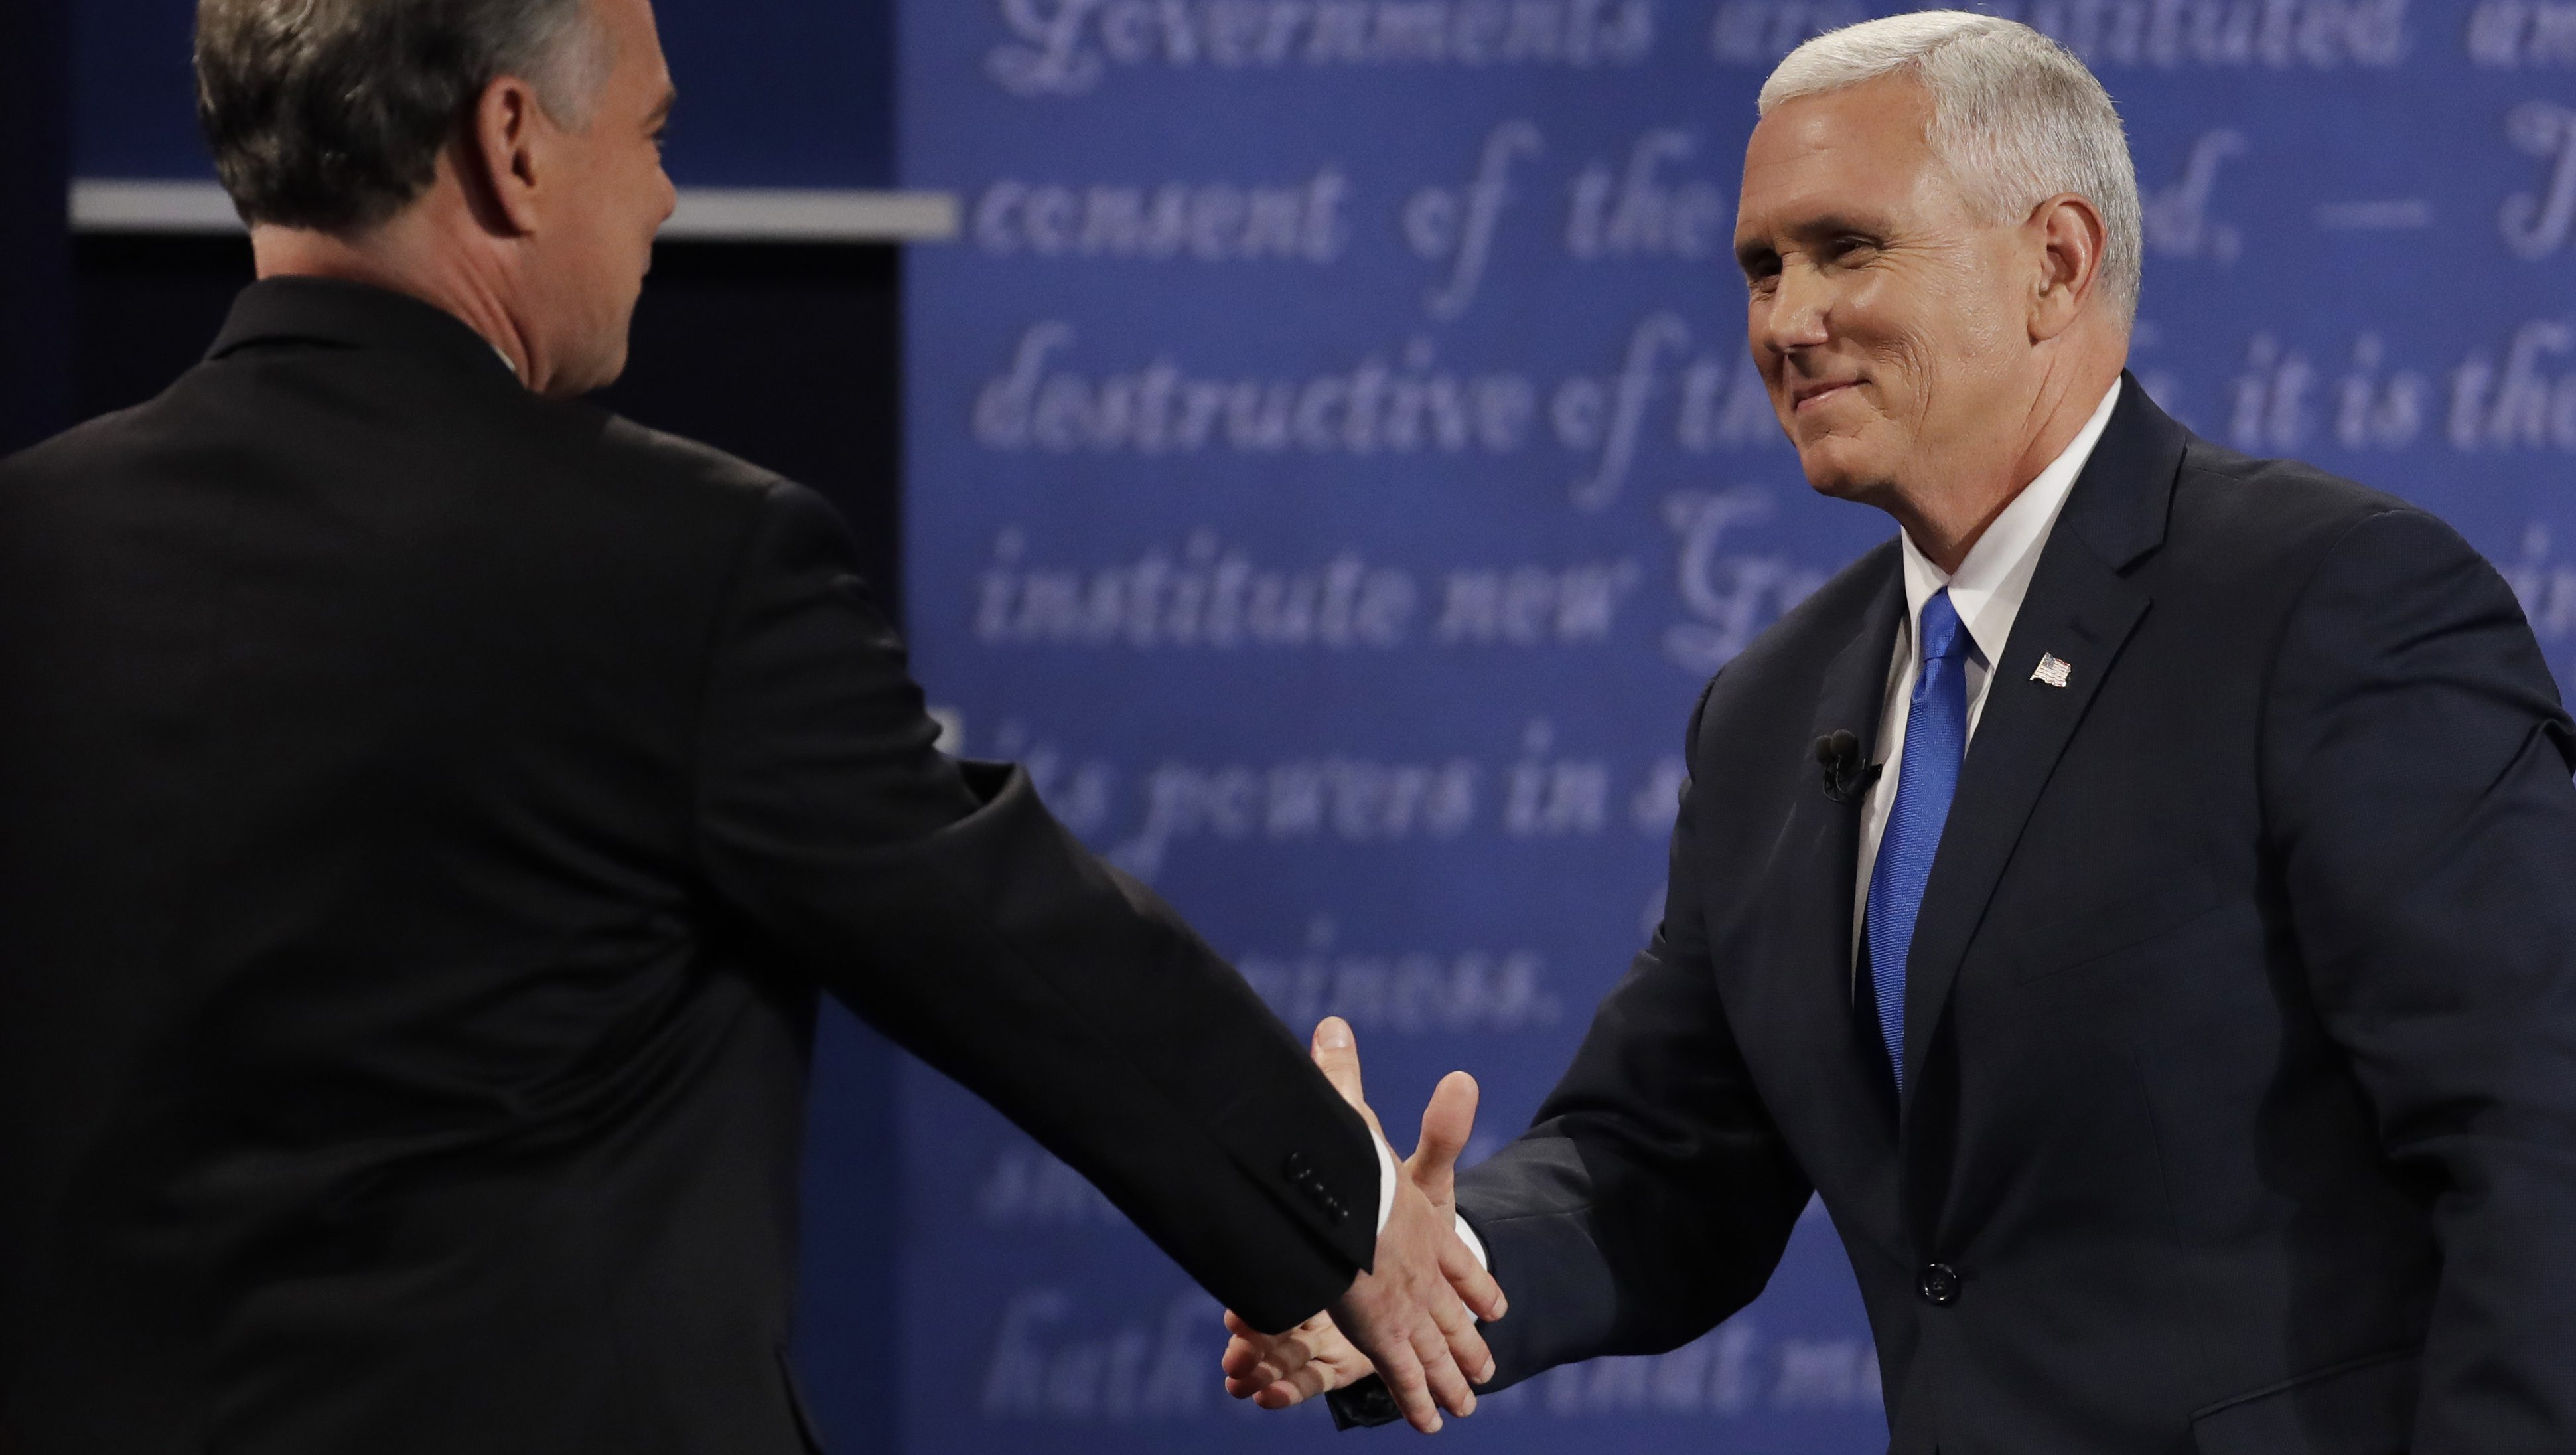 Republican vice-presidential nominee Gov. Mike Pence shake hands with Democratic vice-presidential nominee Sen. Tim Kaine during the vice-presidential debate at Longwood University in Farmville, Va., Tuesday, Oct. 4, 2016. (AP Photo/Patrick Semansky)